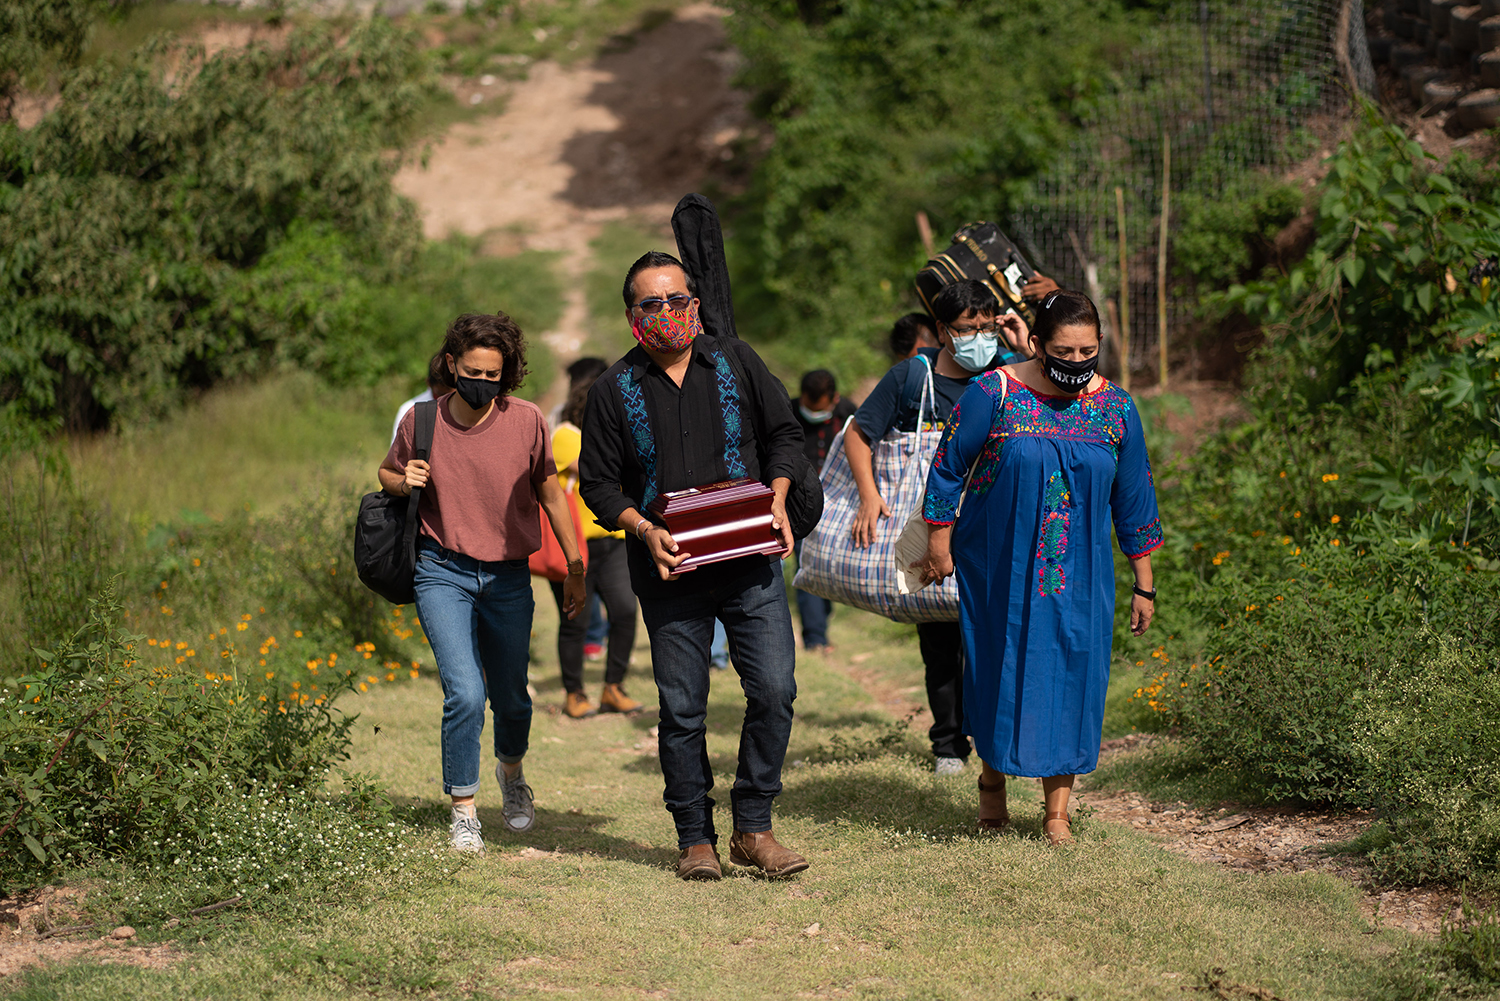 Juan Carlos Ruiz, the pastor of the Lutheran Church of the Good Shepherd, carries Claudio's ashes in Tlapa on Sept. 27. The pastor carried Claudio's remains from New York to Mexico to deliver them to Claudio's family.